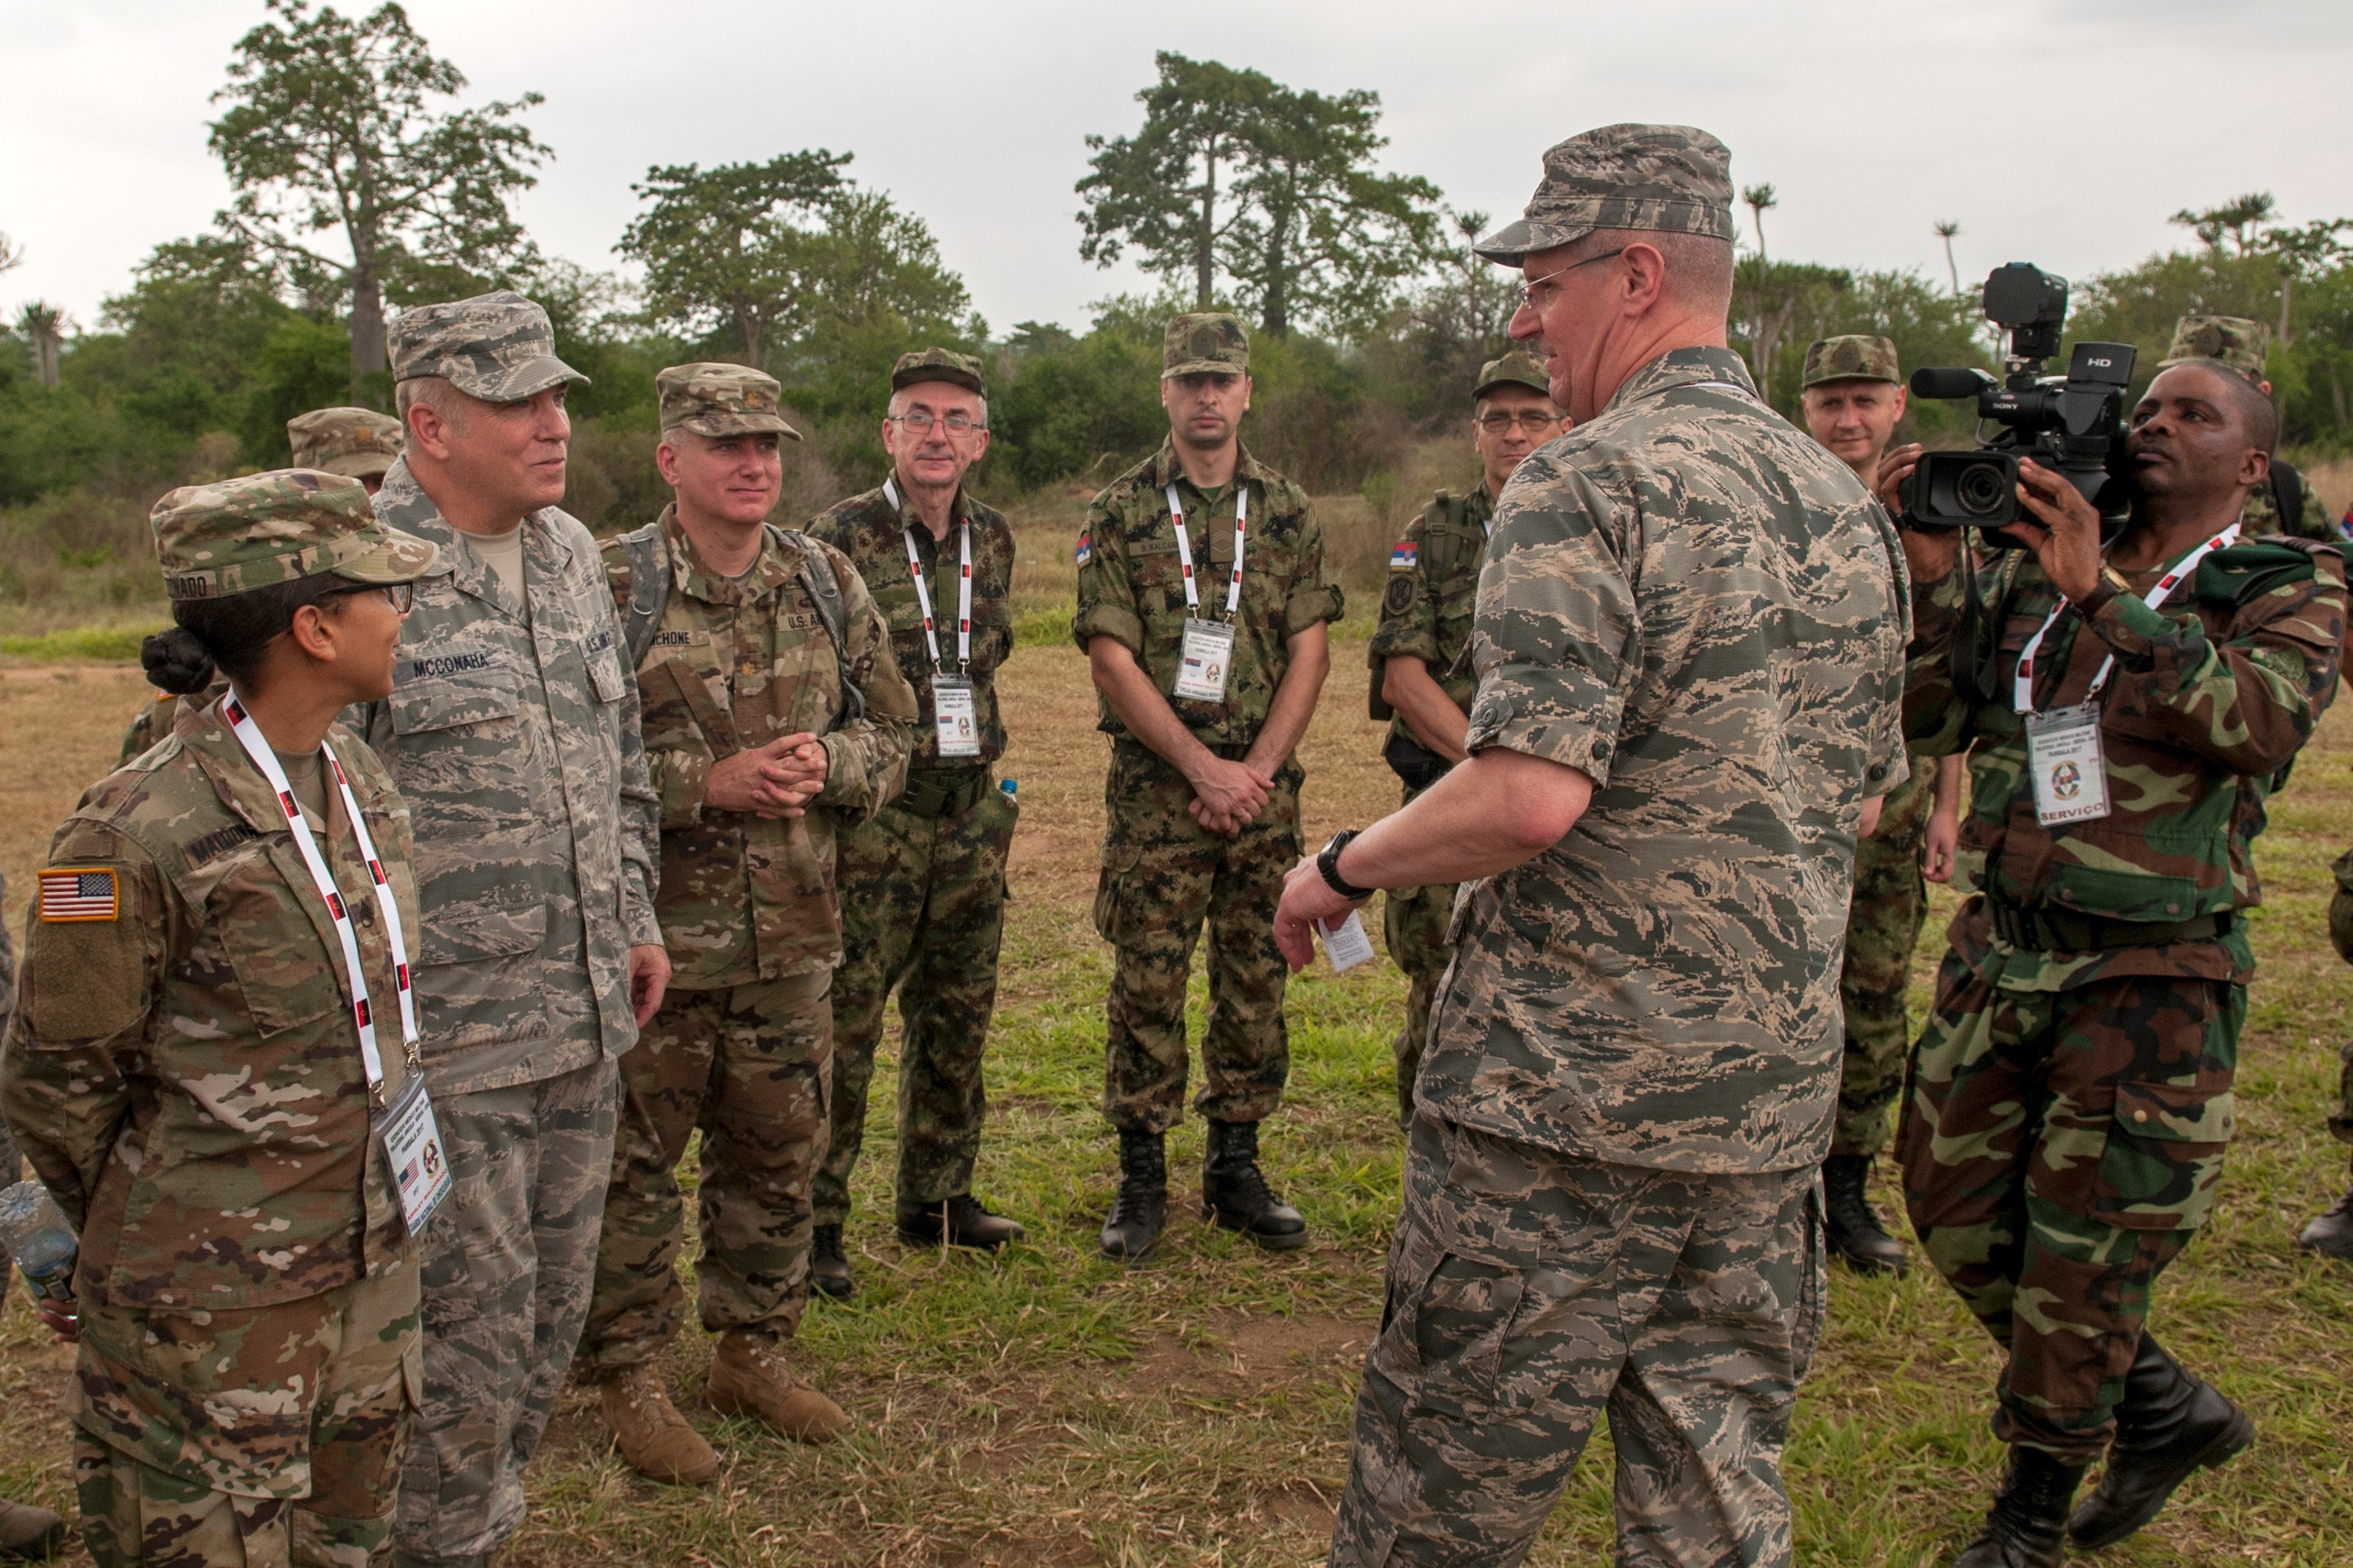 Maj. Gen. Mark E. Bartman, Ohio adjutant general, speaks with members of the Angolan Armed Forces, Serbian Armed Forces and the Ohio National Guard during the PAMBALA 2017 medical exercise Dec. 9, 2017, in Bengo, Angola. PAMBALA, the first-ever trilateral combined medical engagement to take place in the Republic of Angola, is an agreement between the Angolan Armed Forces, Serbian Armed Forces and the Ohio National Guard to share best practices, strengthen medical treatment processes, establish new relationships and nurture established partnerships. (Ohio National Guard photo by Staff Sgt. Wendy Kuhn)